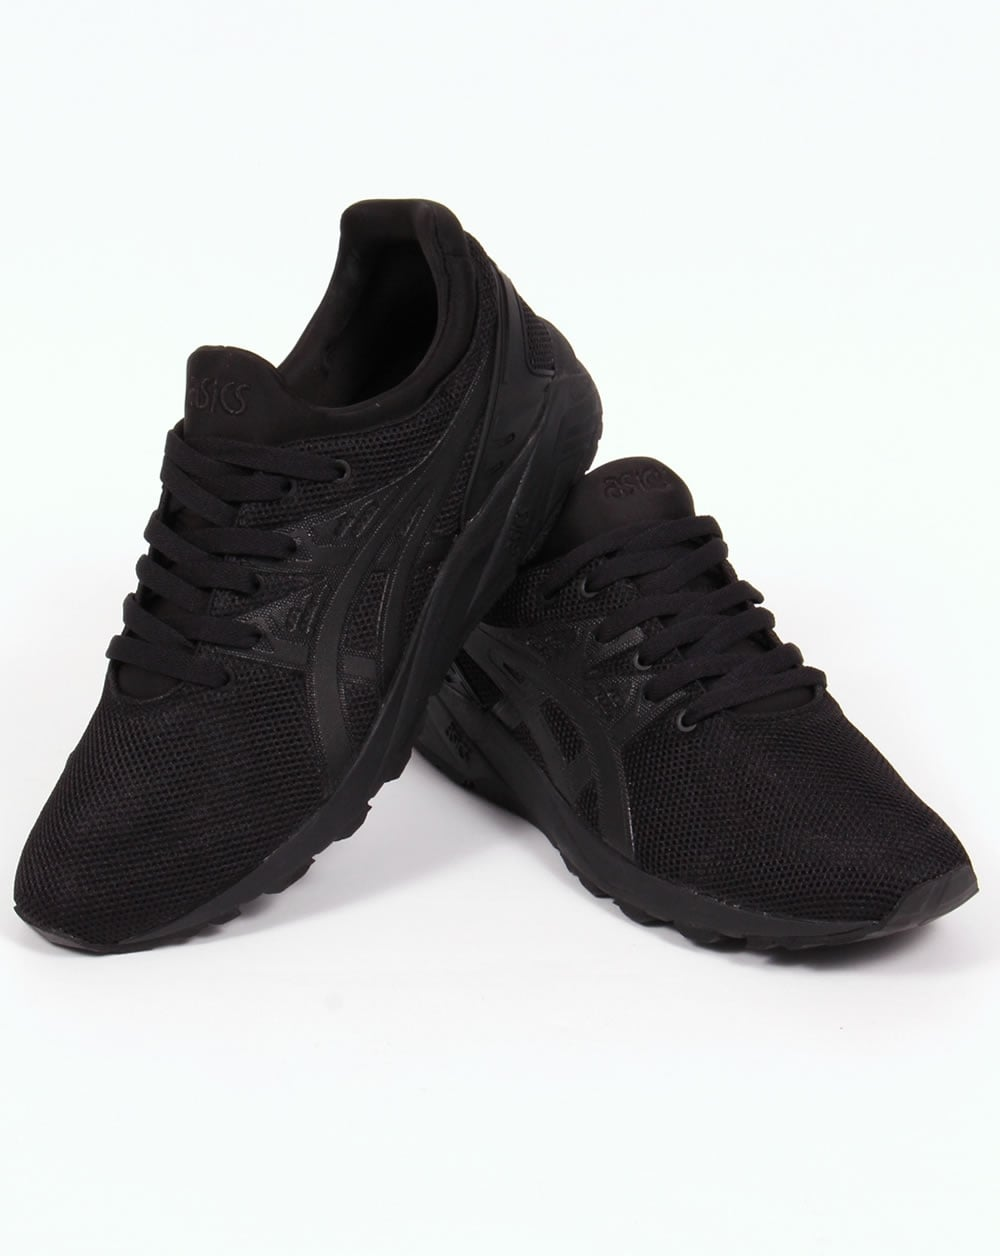 mens black asics trainers Cheaper Than Retail Price> Buy Clothing ...